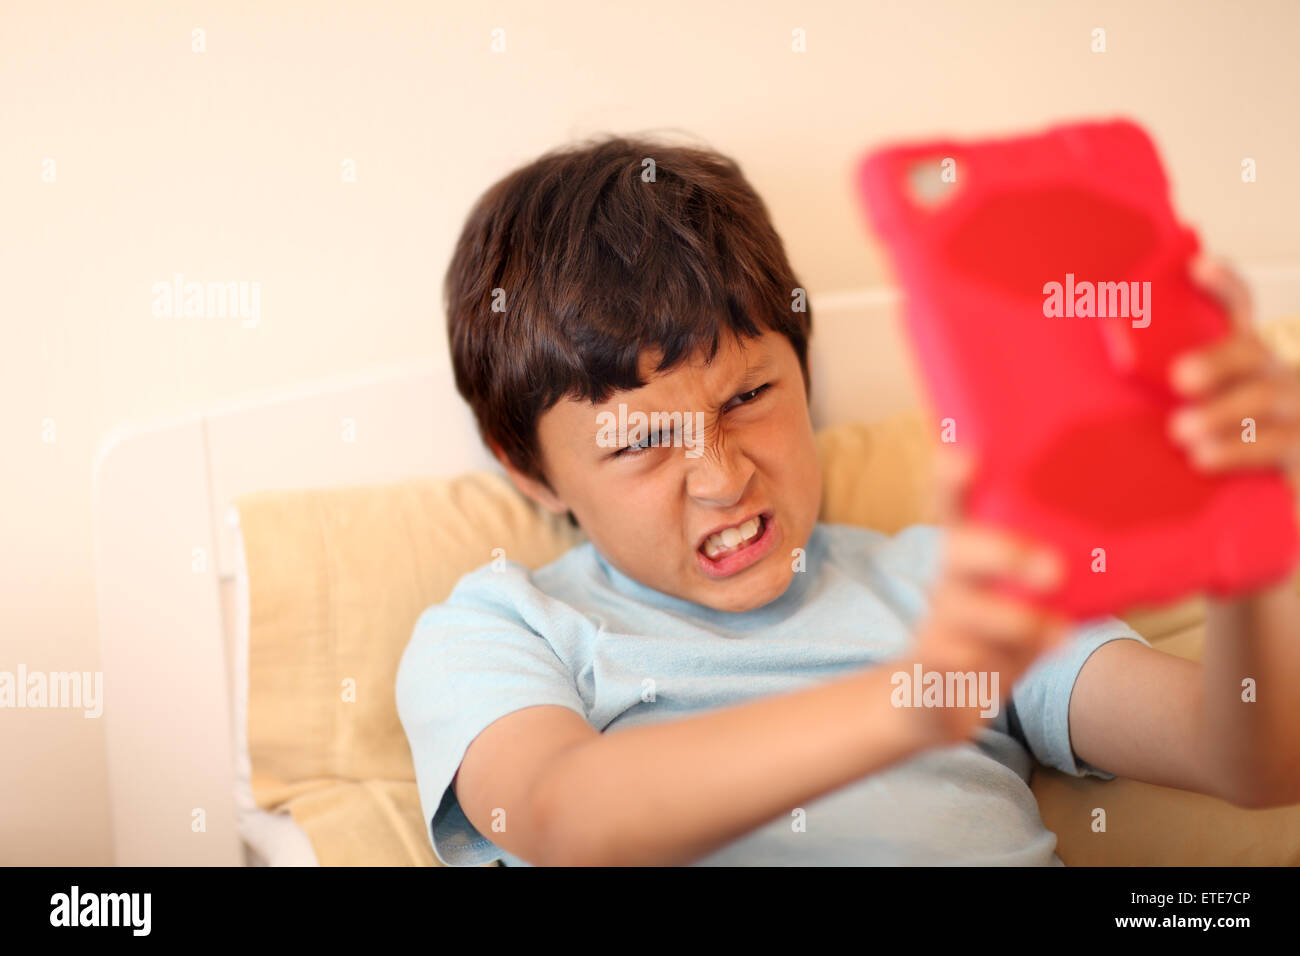 Young boy making selfie pictures with tablet computer - with shallow depth of field - Stock Image